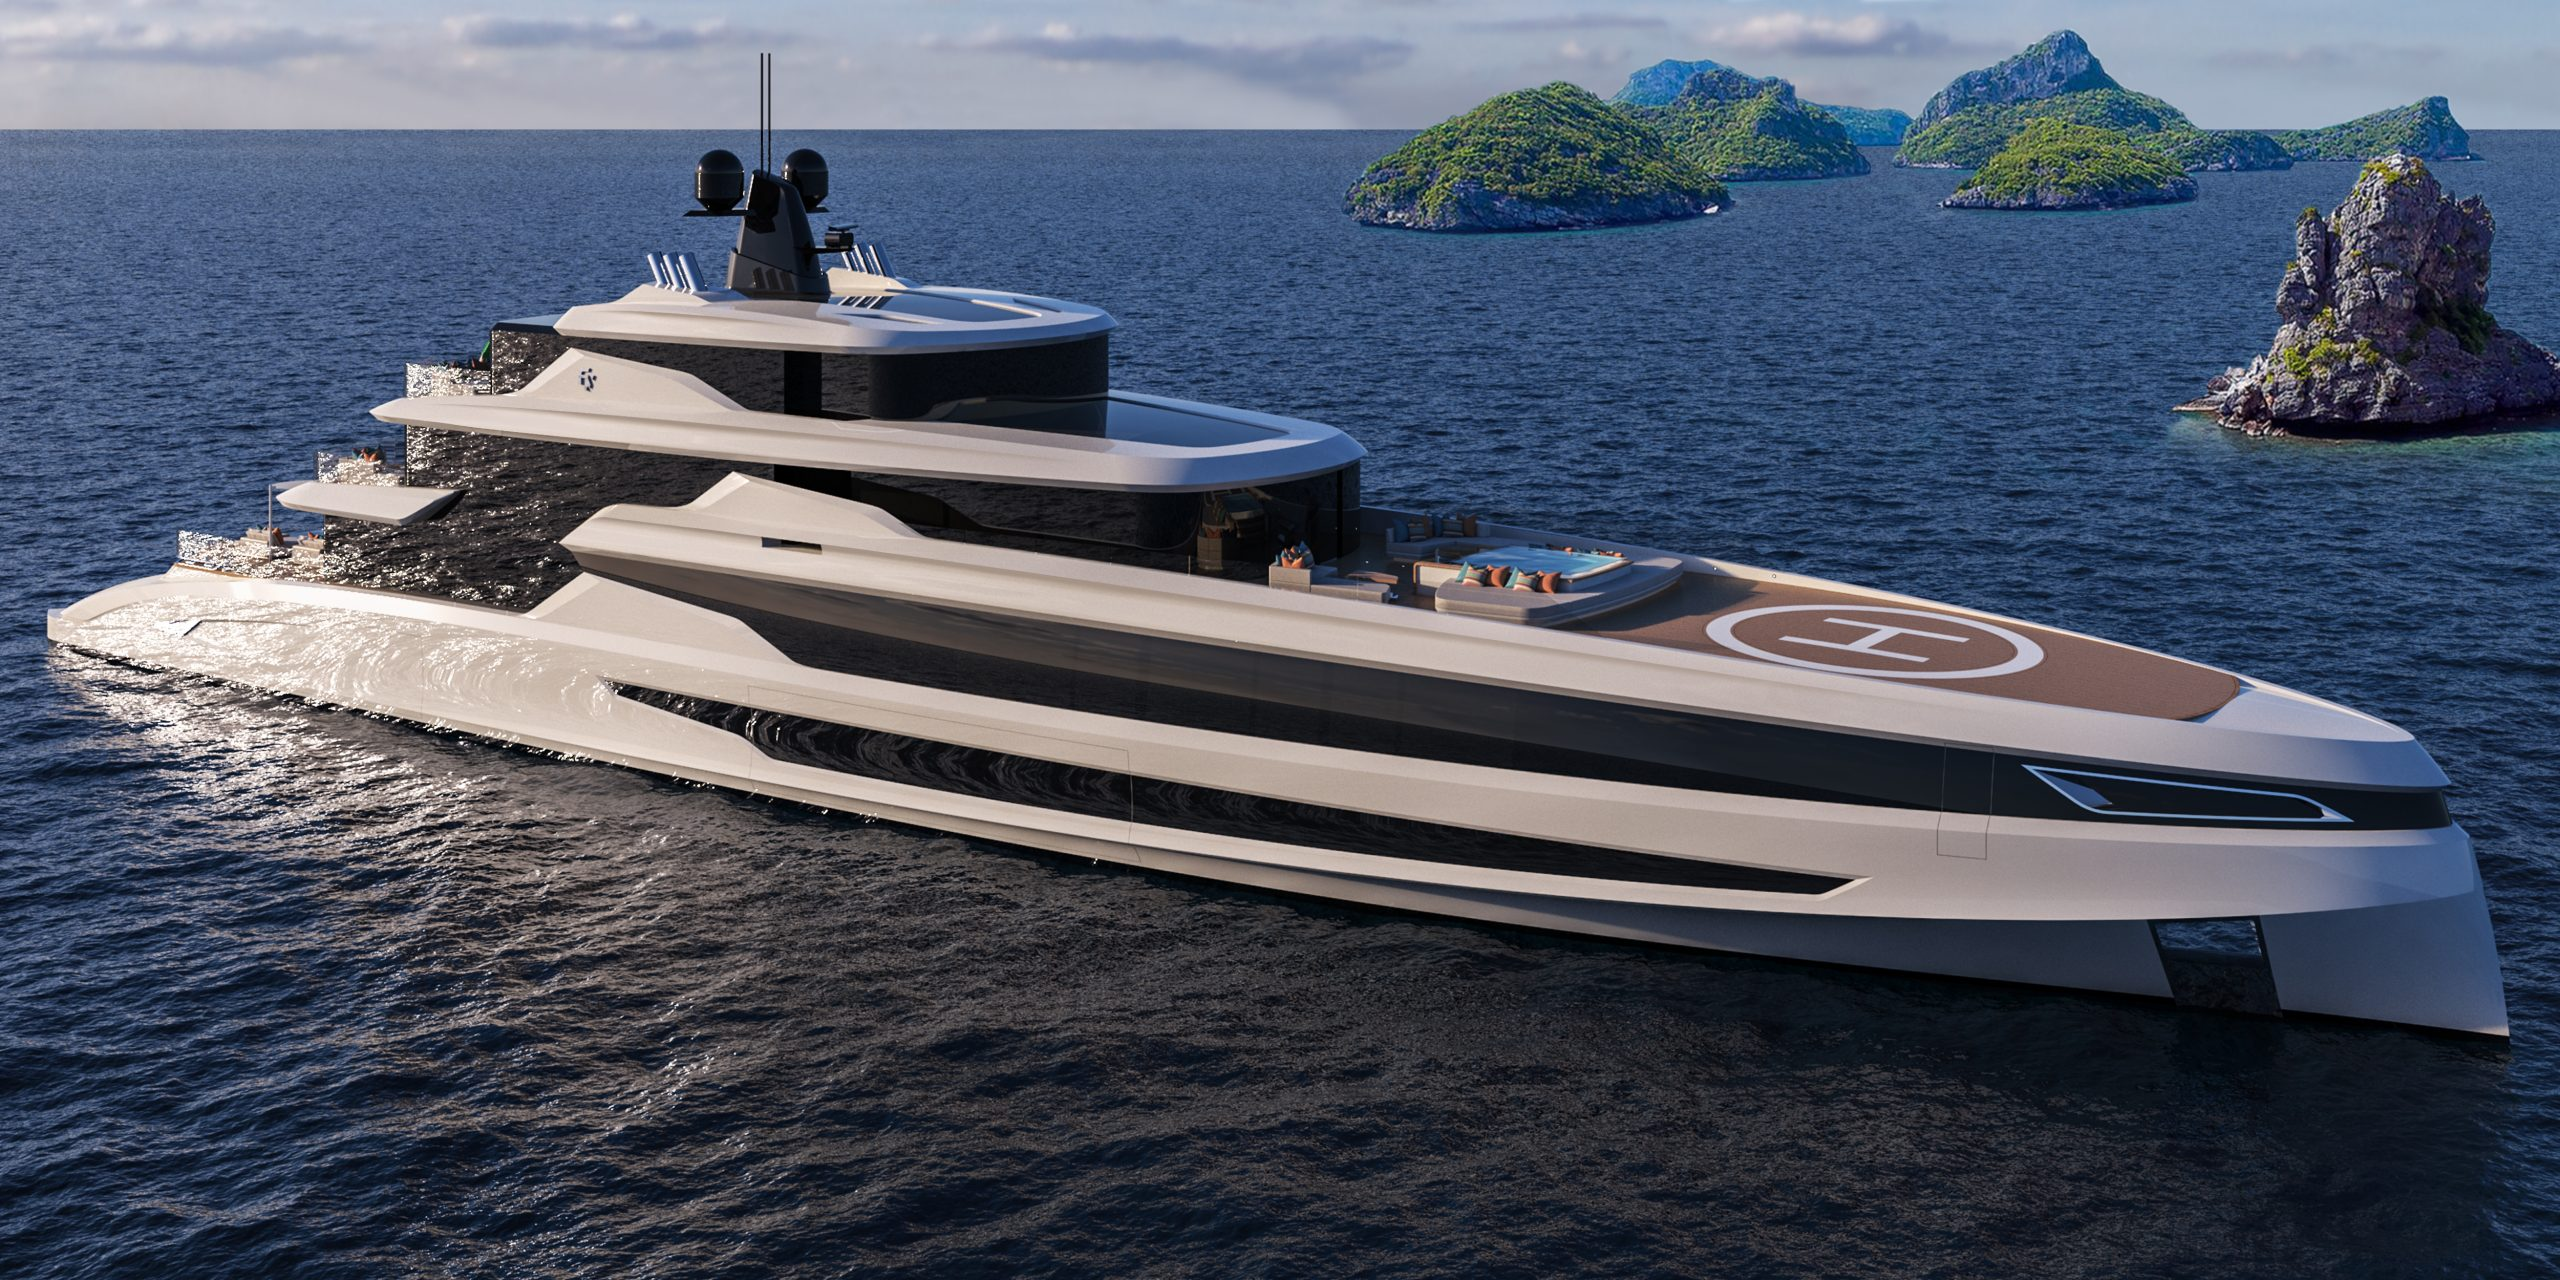 The megayachts return to sea